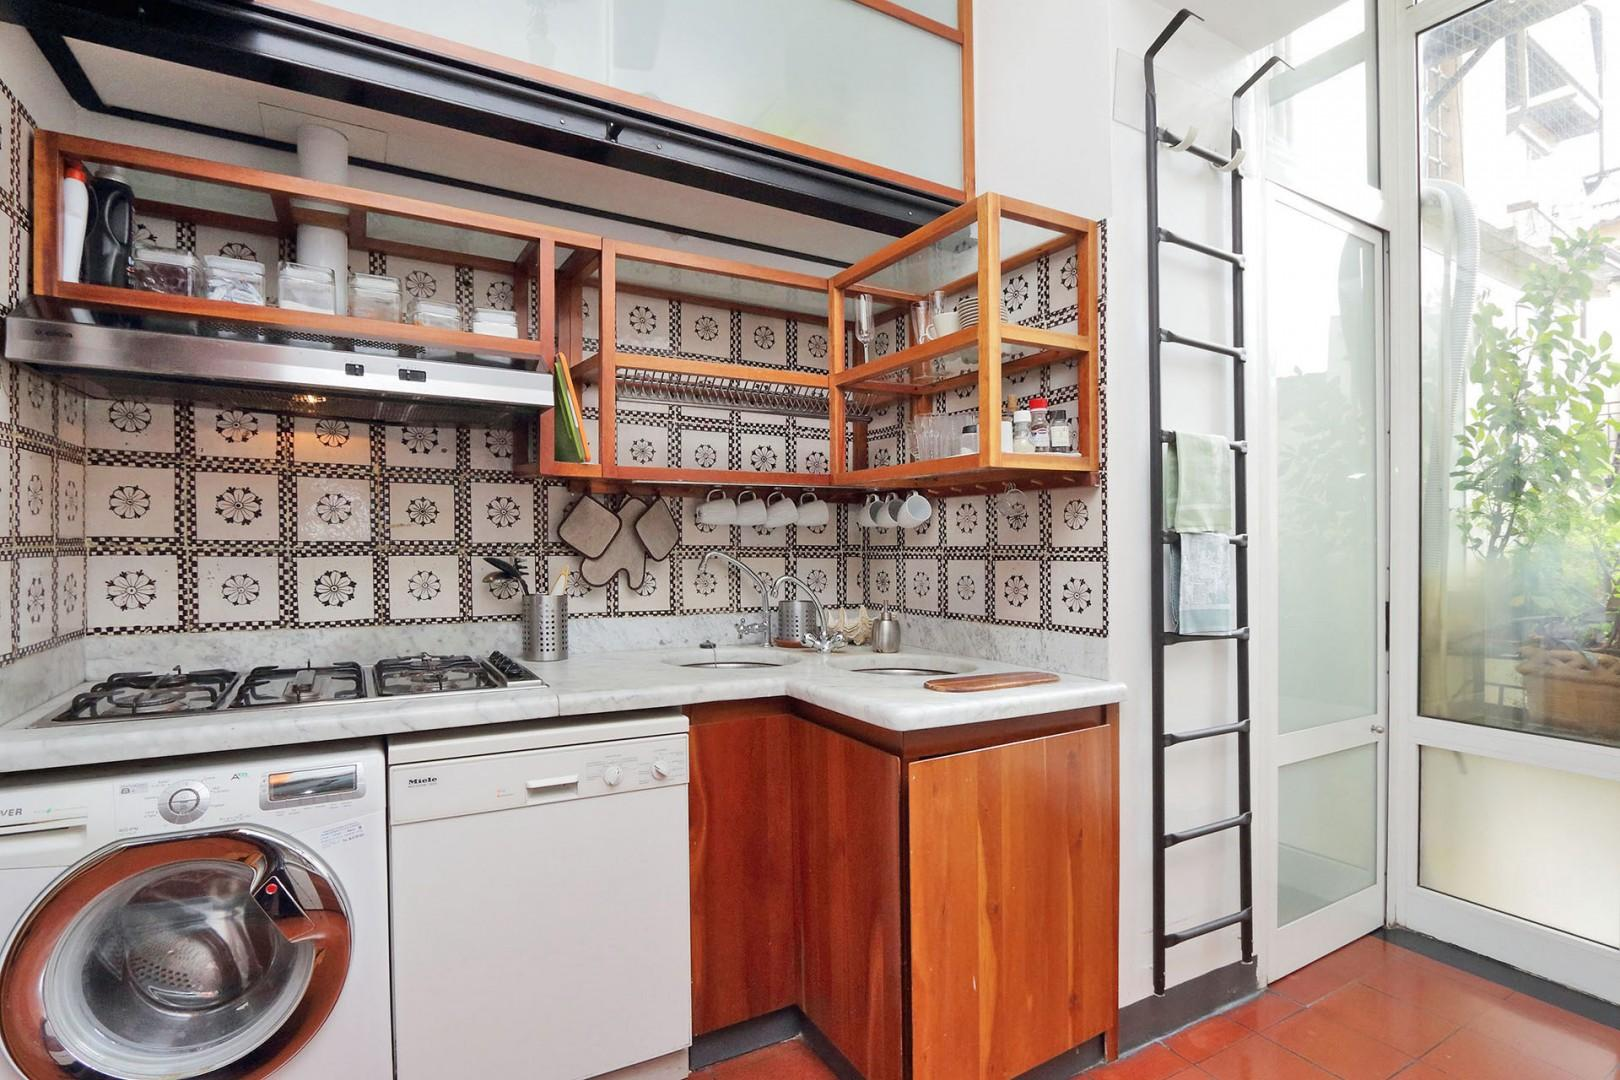 Kitchen is well-stocked. Marble countertops and all essential kitchen appliances.